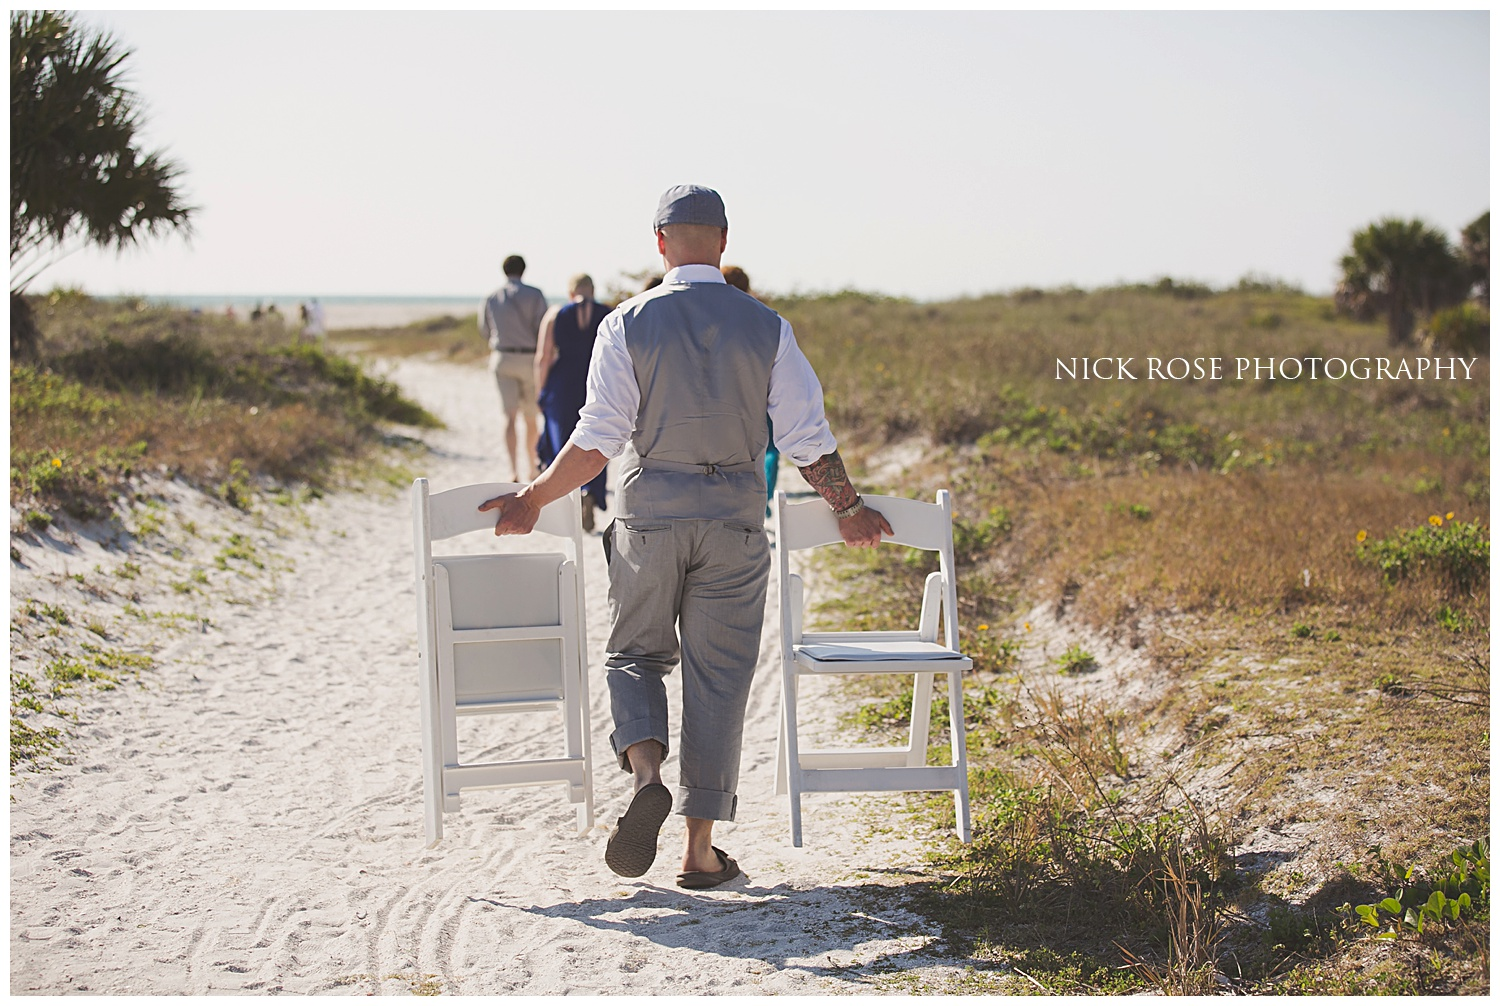 Beach wedding photography in Clearwater Florida